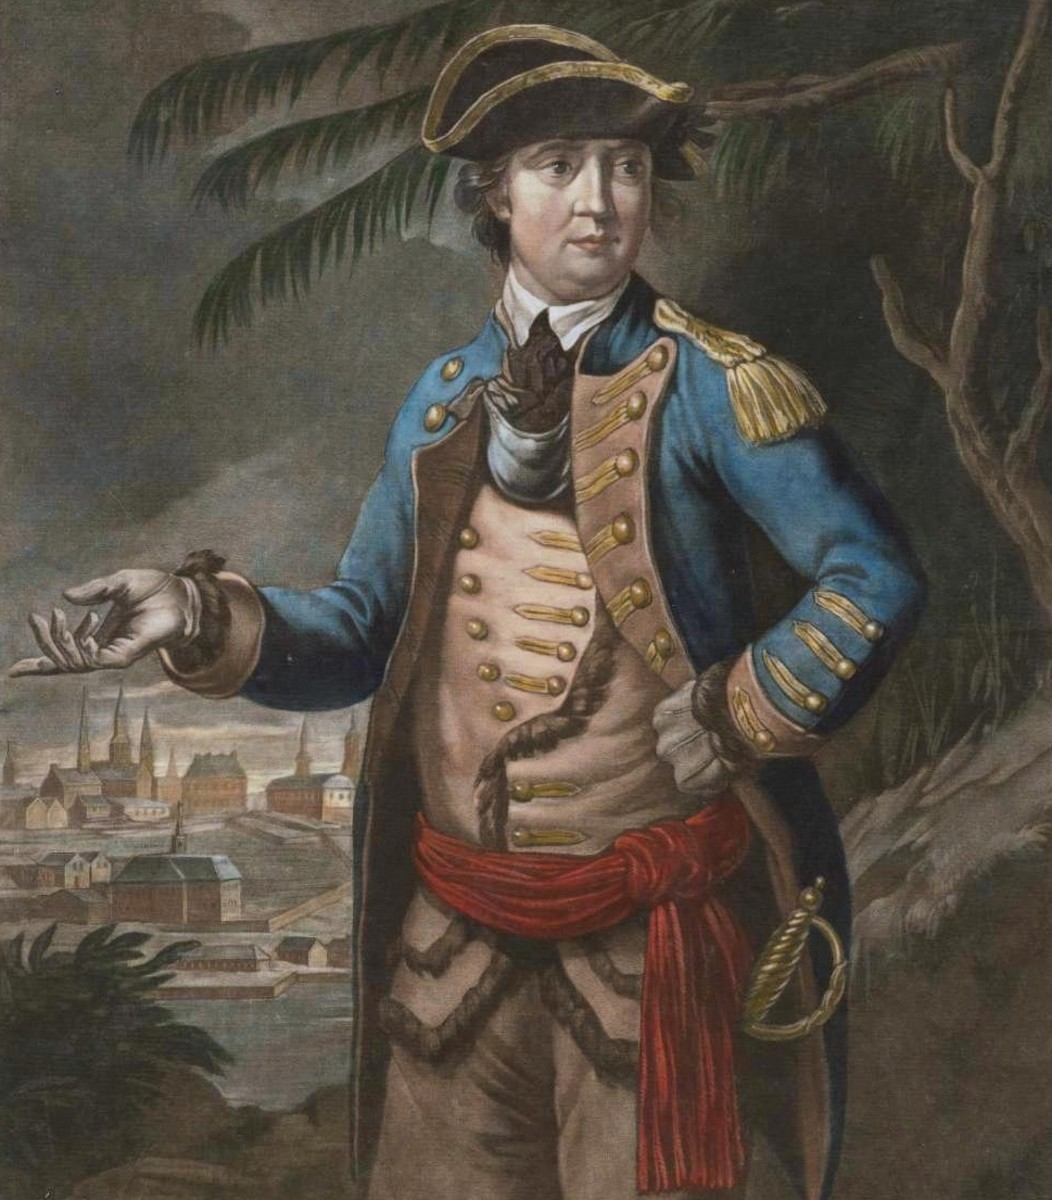 the son on the american revolution benedict arnolds biography Did benedict arnold regret his decision to join the british after the united benedict arnold is portrayed by most american revolutionary historians as one of washington's most promising commanders whose arnold felt betrayed wholeheartedly by the fathers of the american revolution.